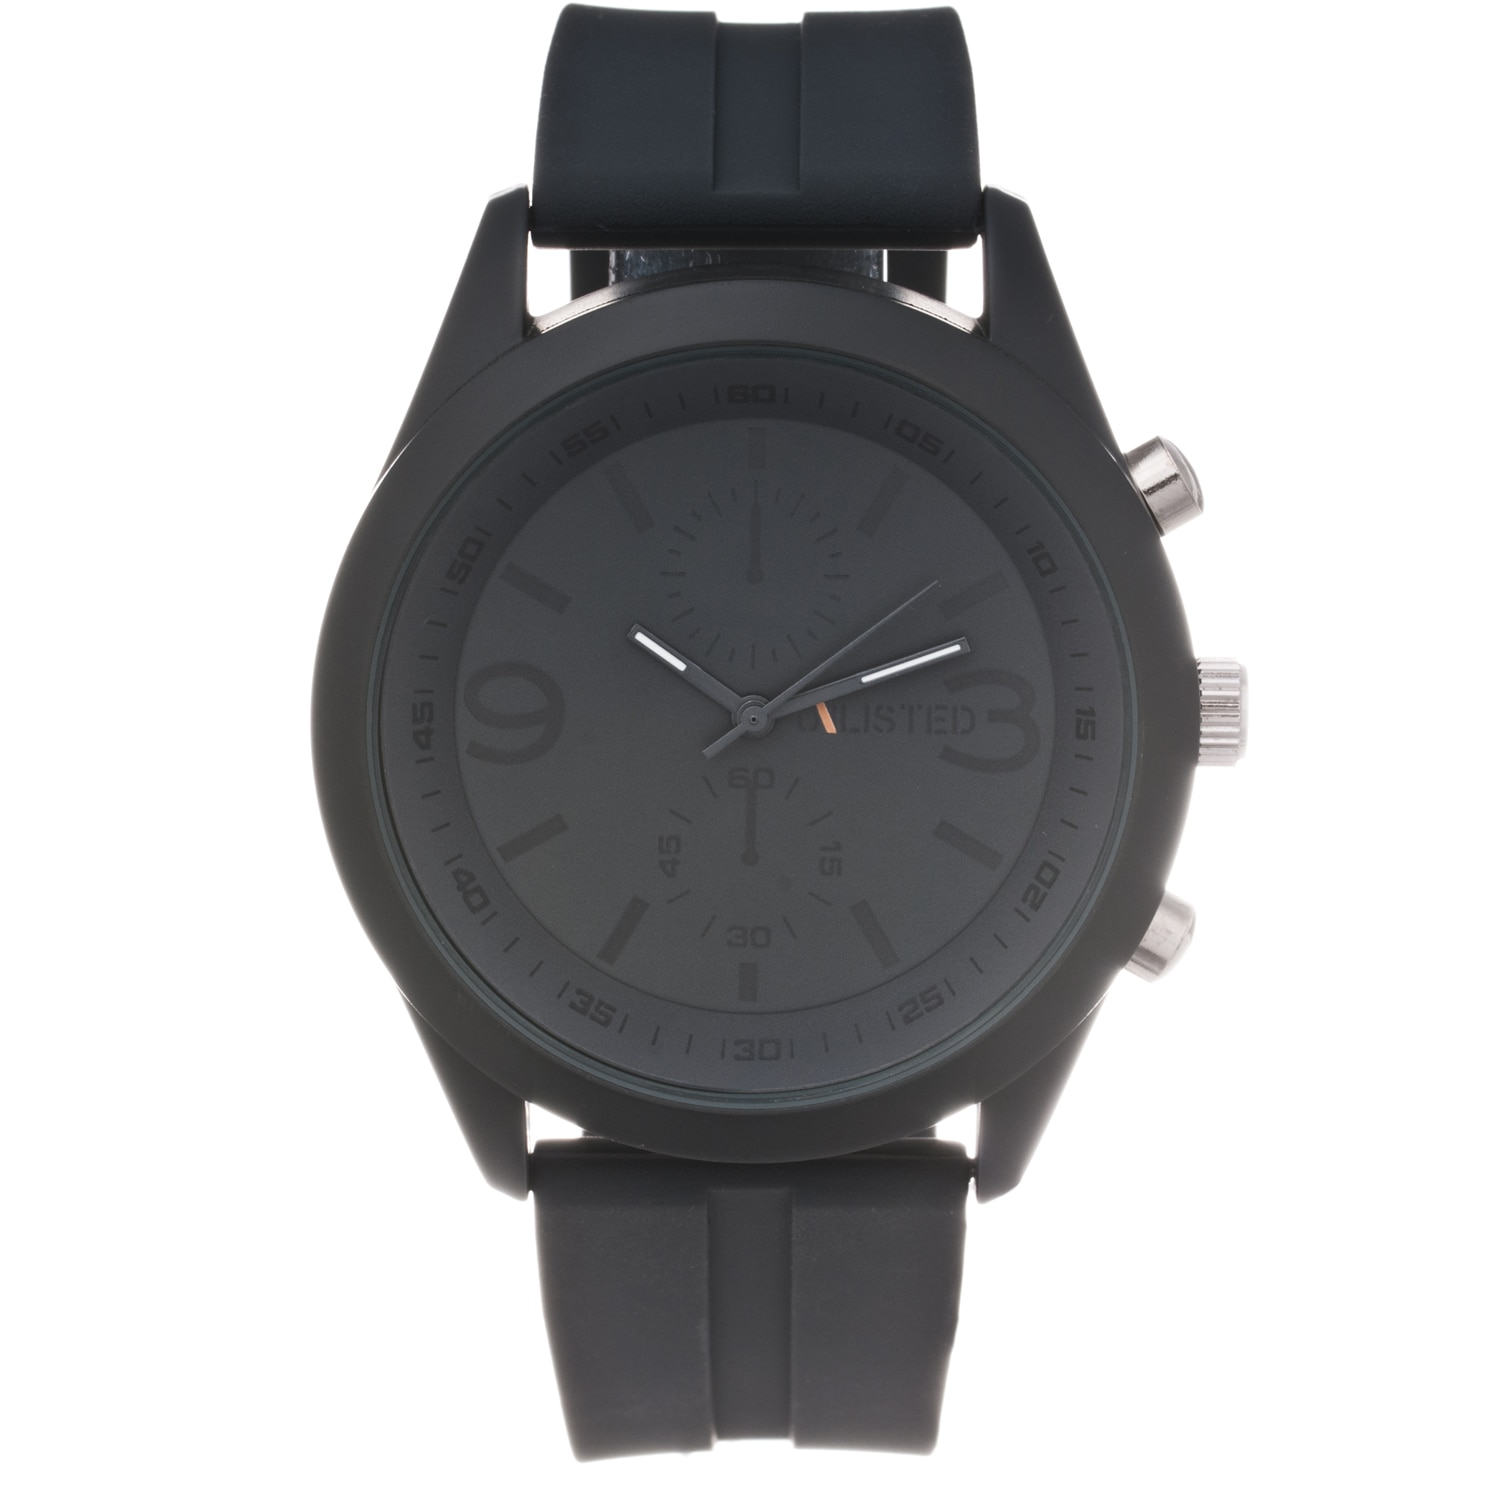 Unlisted by Kenneth Cole Men's Black Rubber Strap Analog Watch